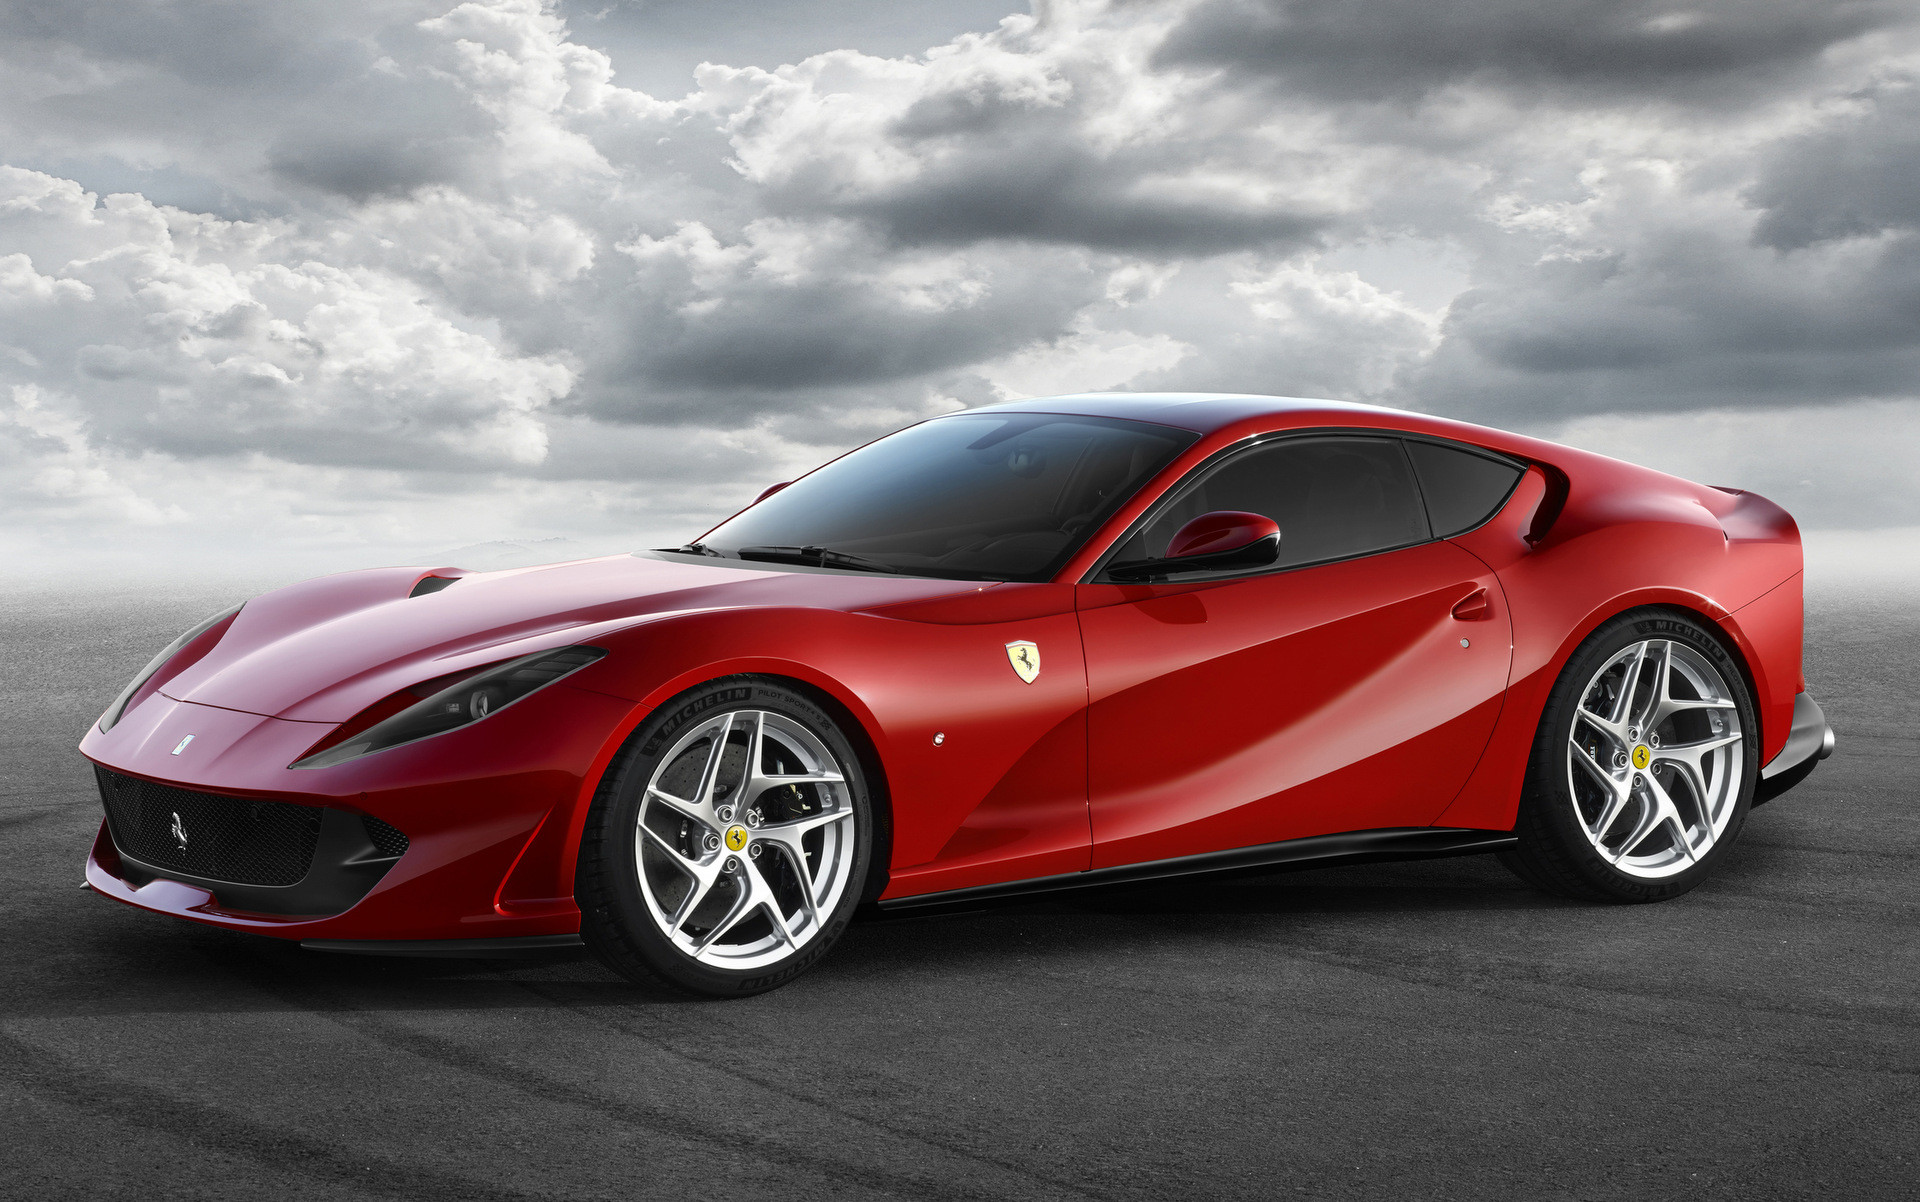 Super Fast Cars Wallpapers 64 Images